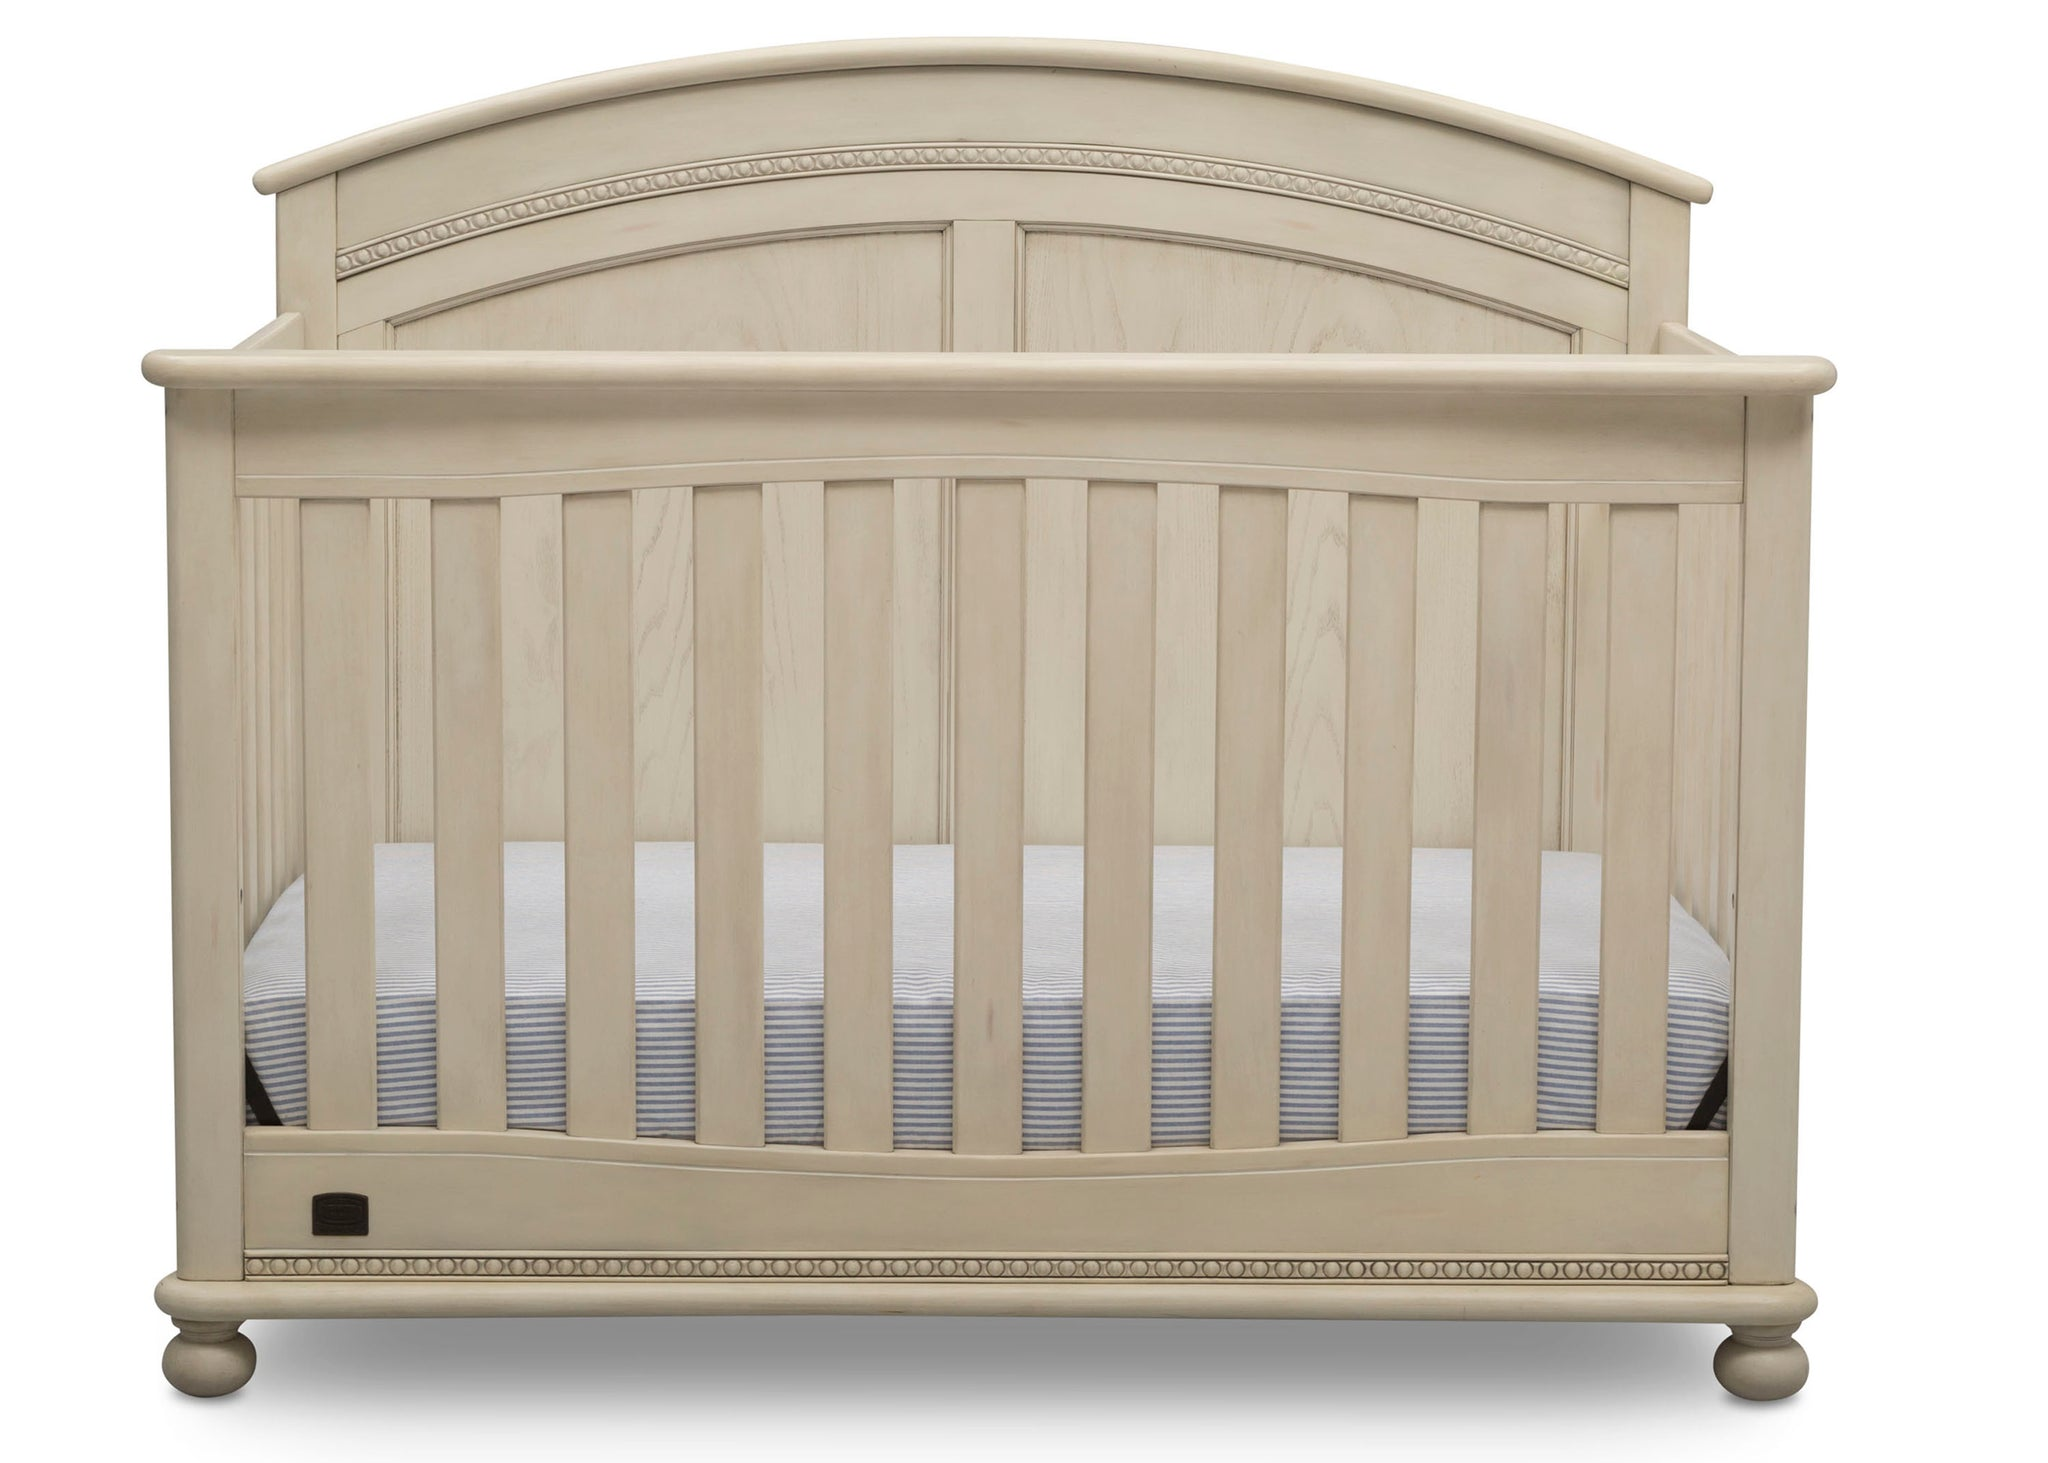 Simmons Kids Antique White (122) Ainsworth 4-in-1 Convertible Crib (W337250), Front Silo, a2a